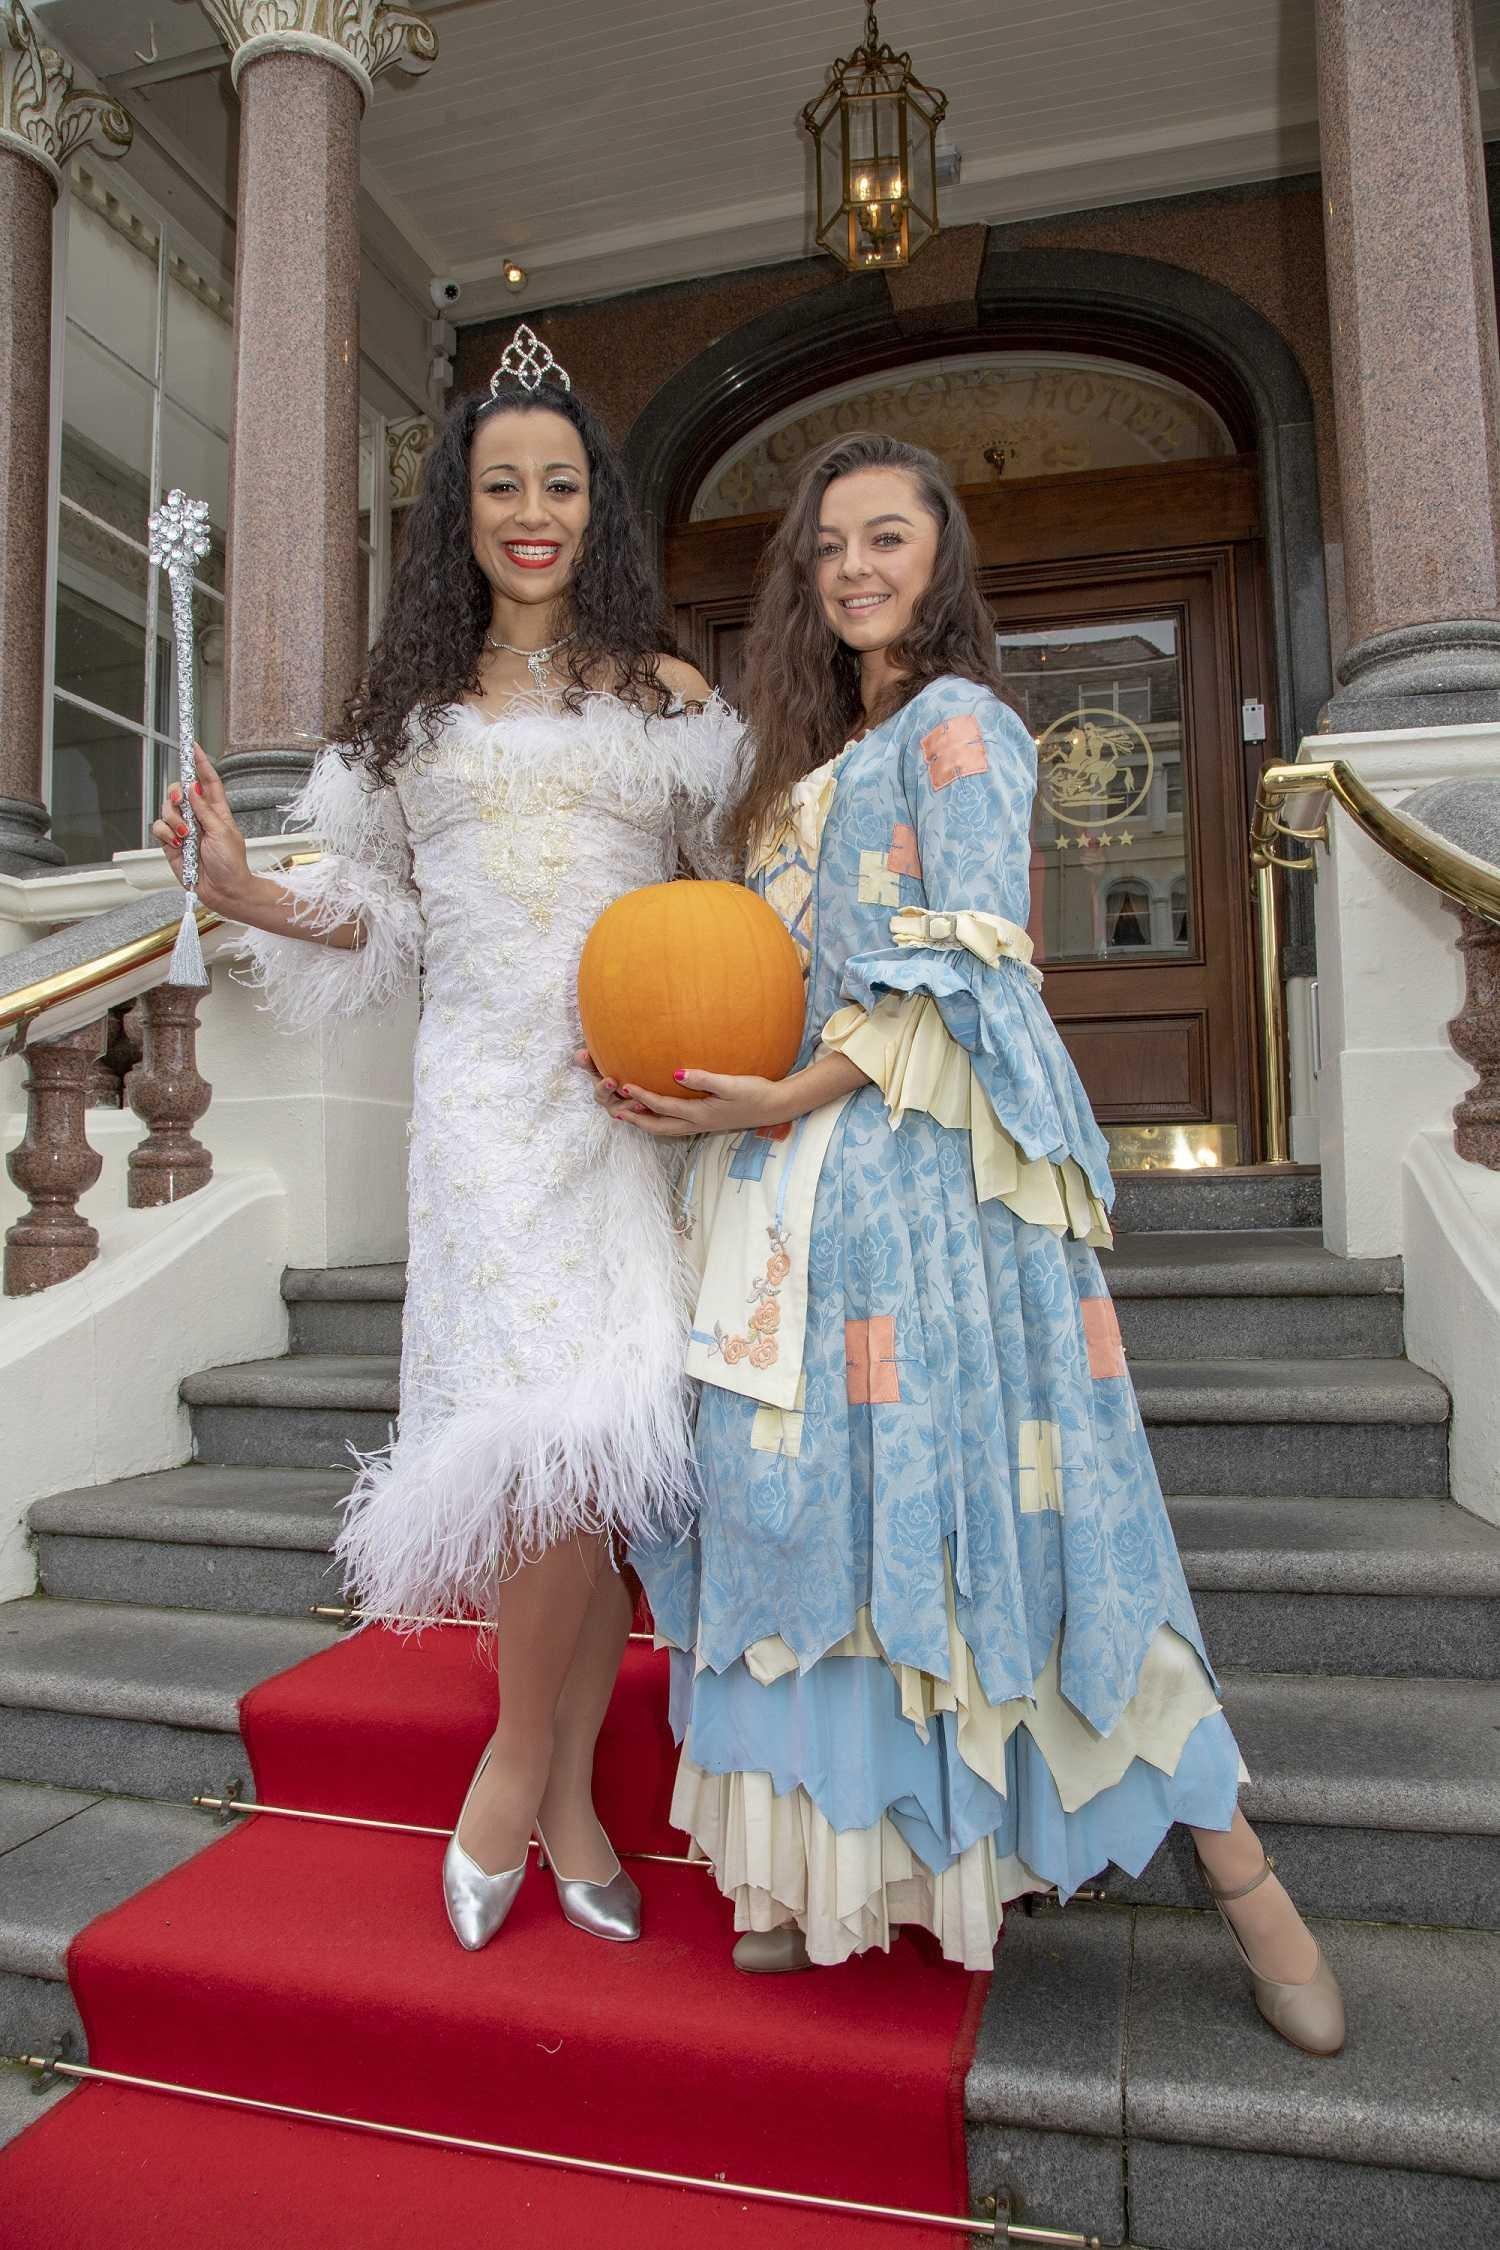 image of Natalie Winsor (Fairy Godmother) and Carly Burns (Cinderella)